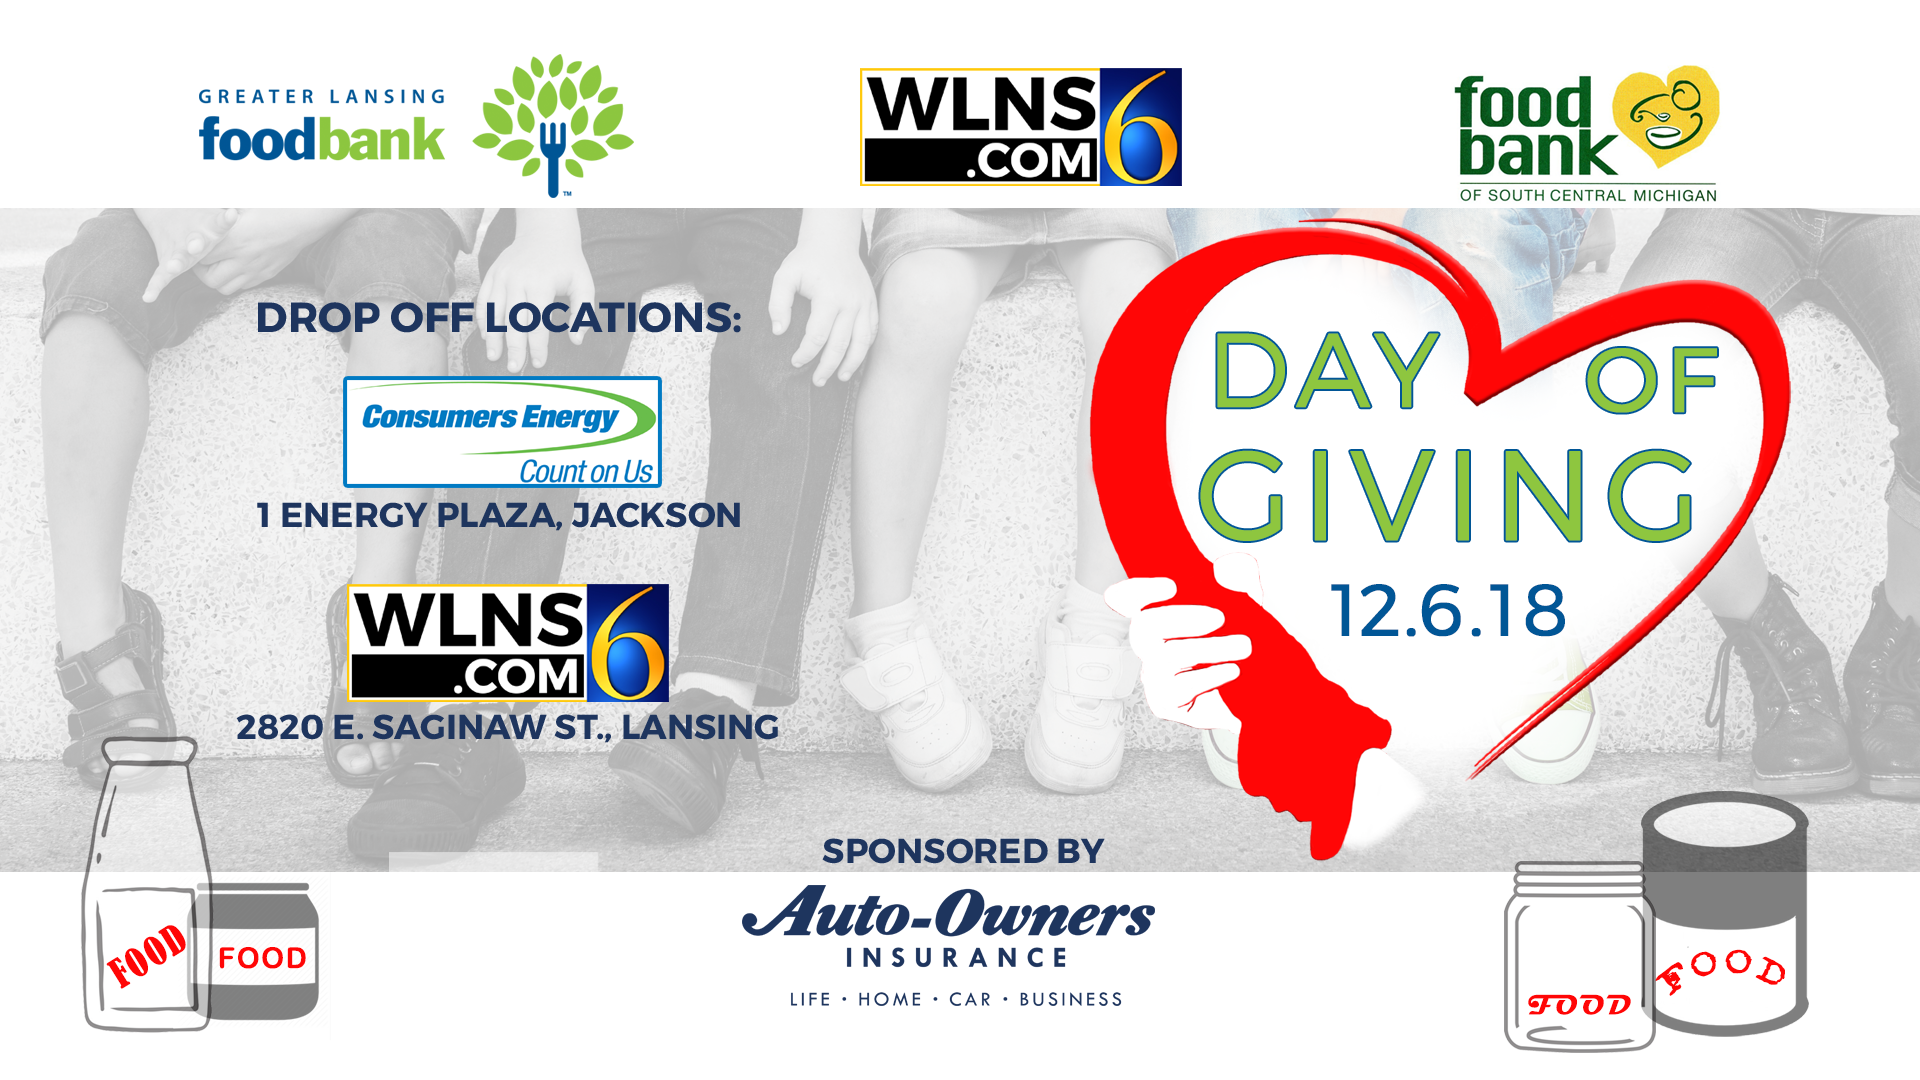 Day of Giving